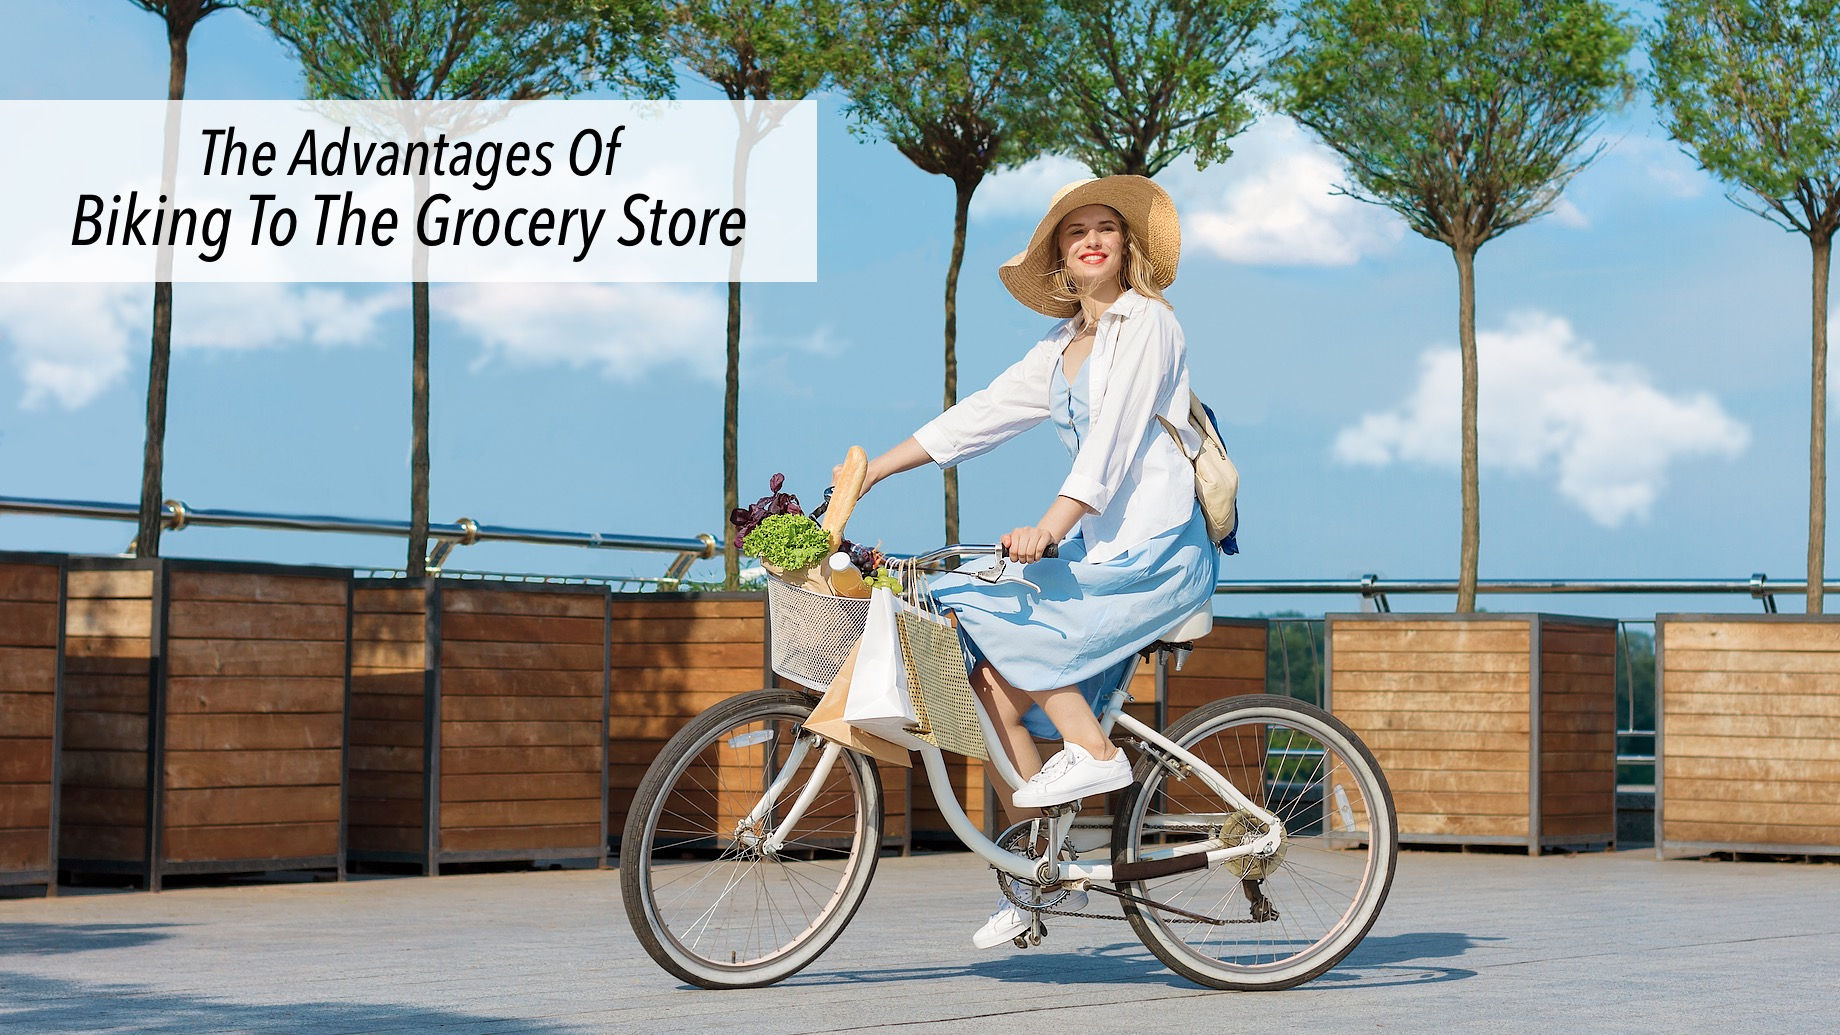 The Advantages Of Biking To The Grocery Store